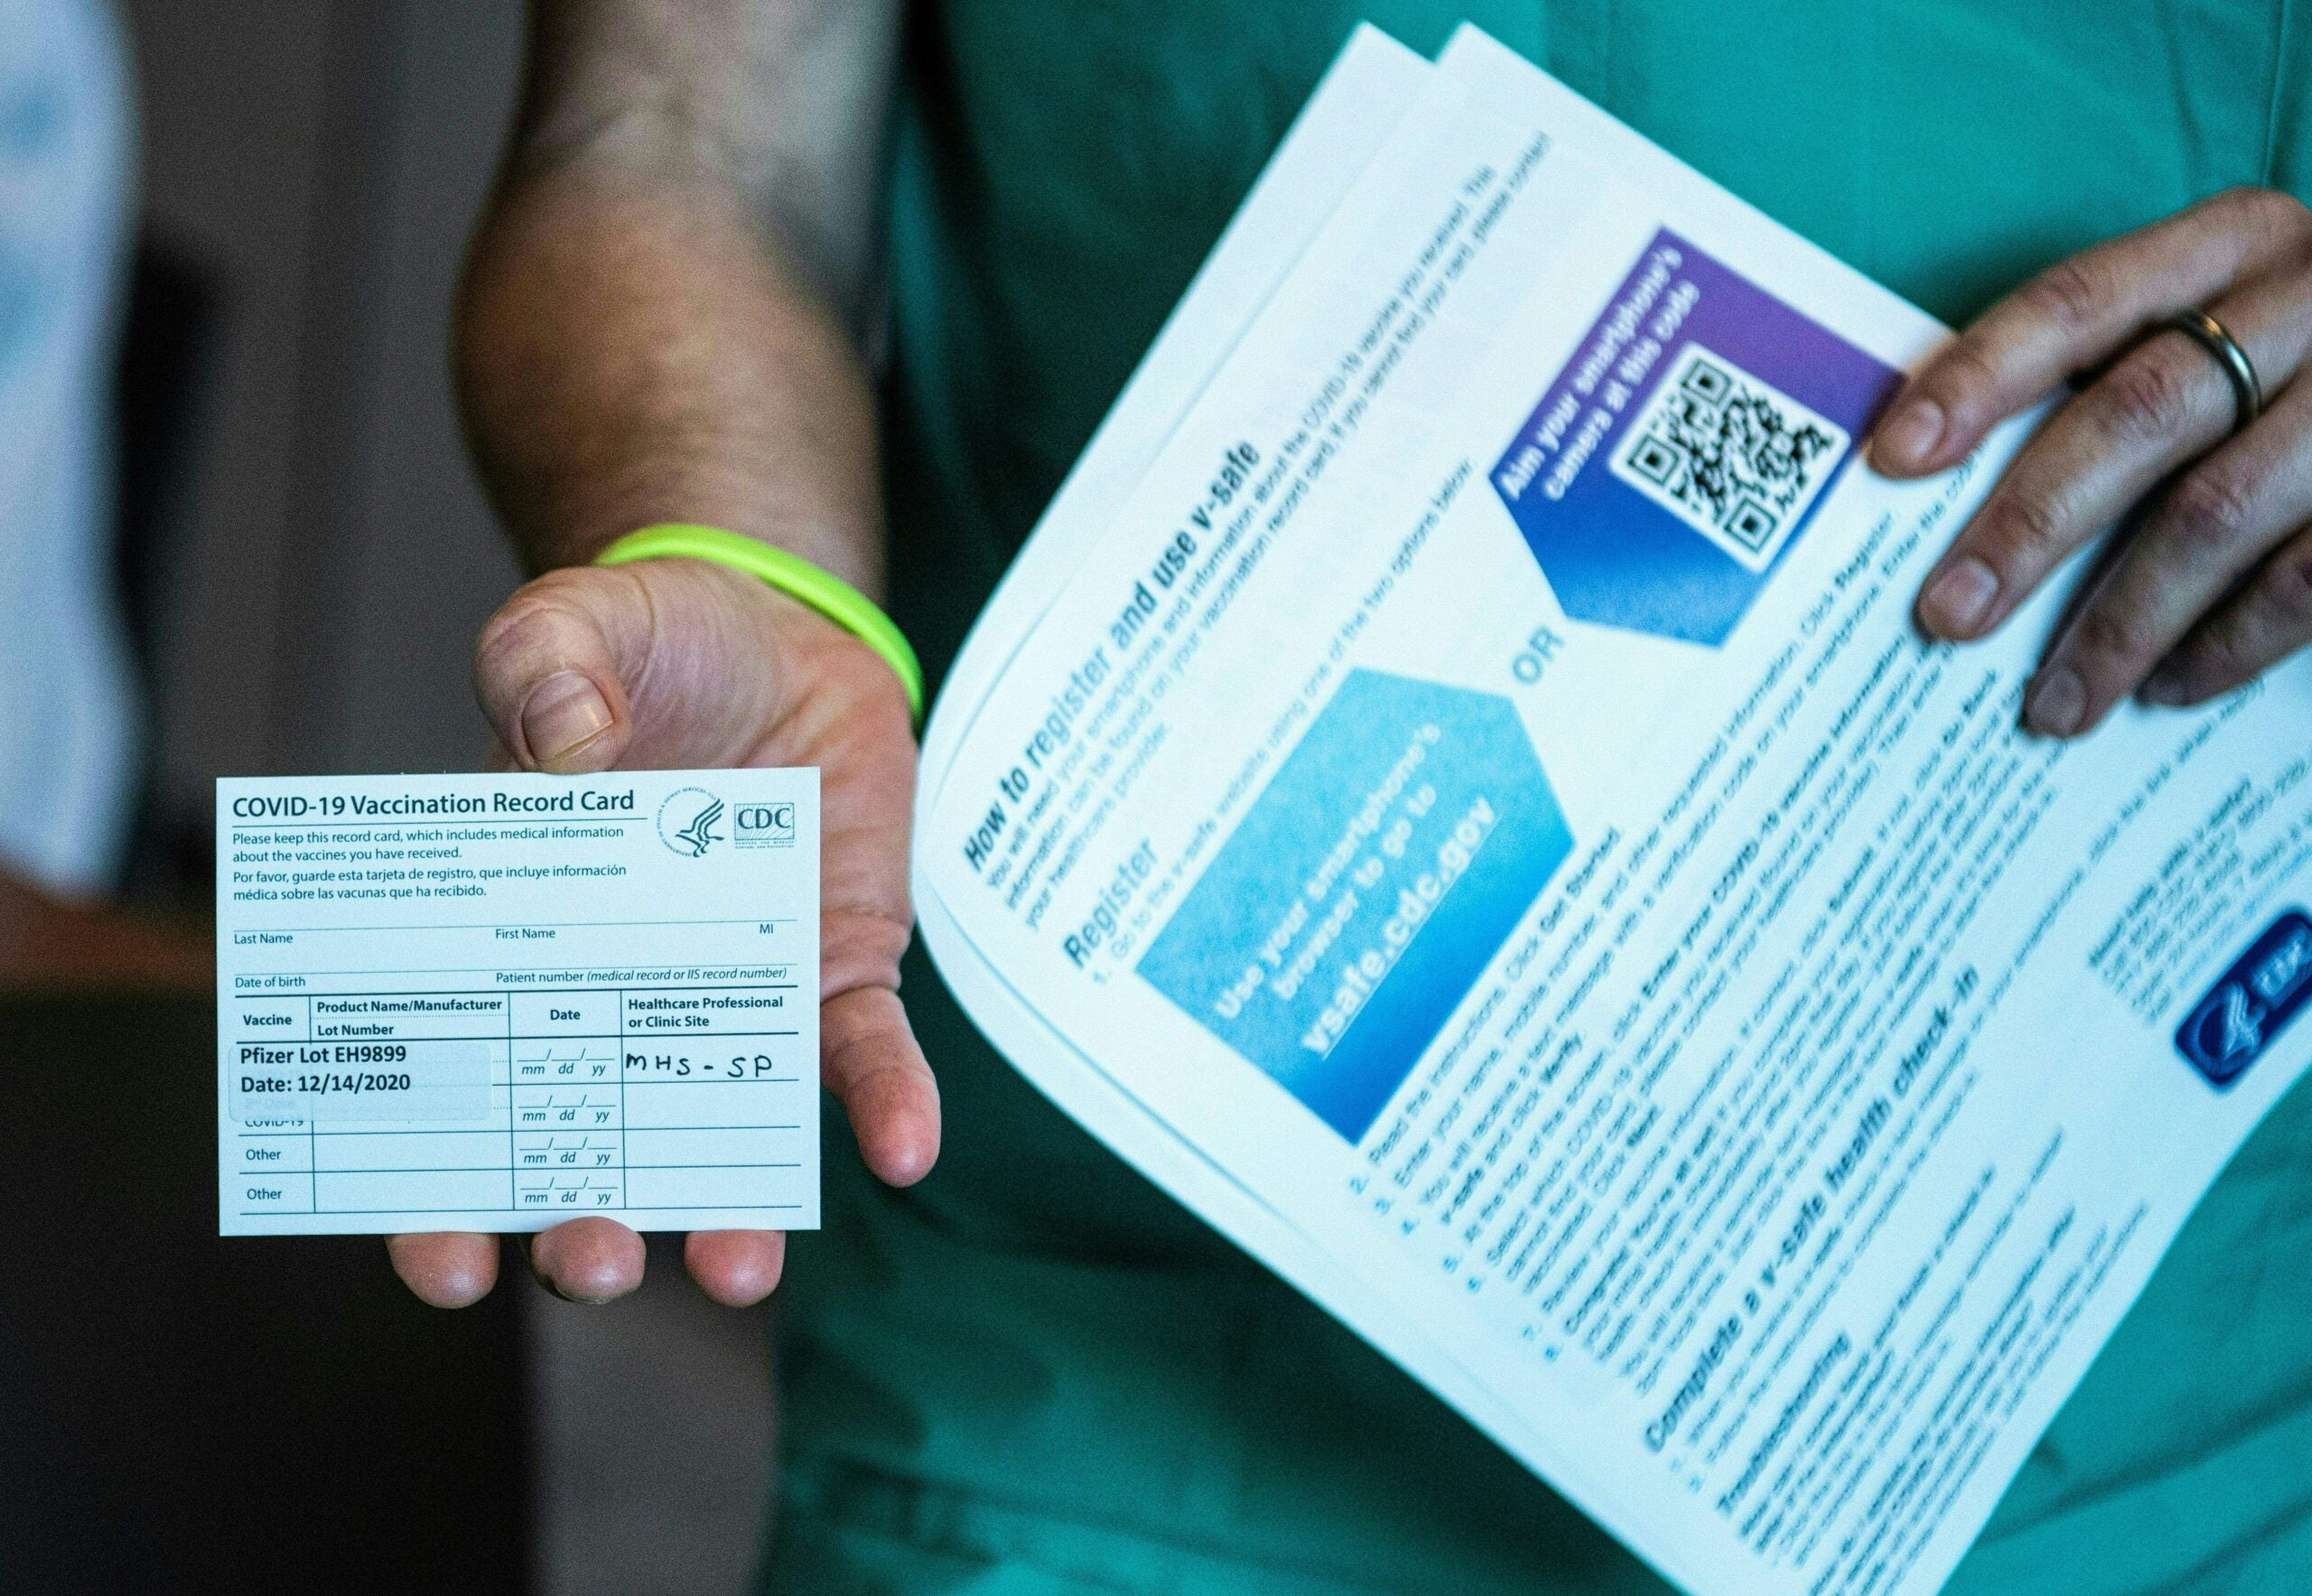 What documentation do you need to have after getting vaccinated?